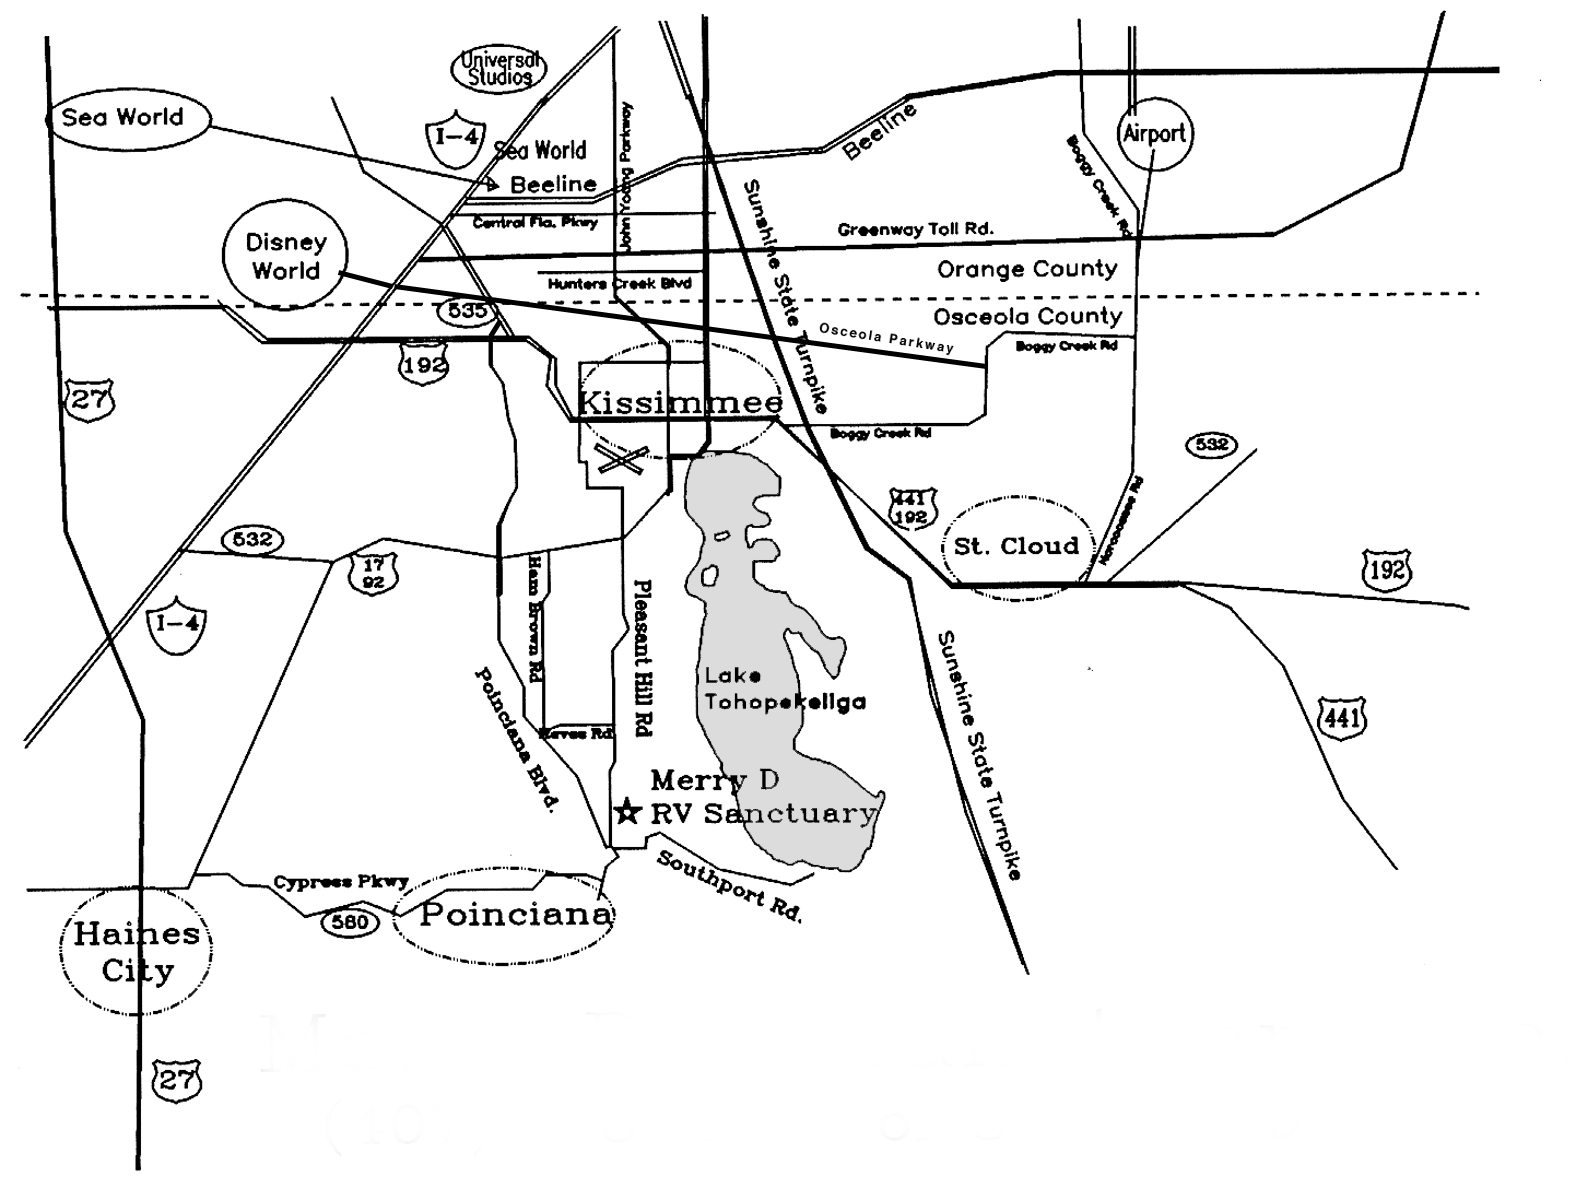 Maps Of The Merry D Rv Sanctuary In Kissimmee Fl